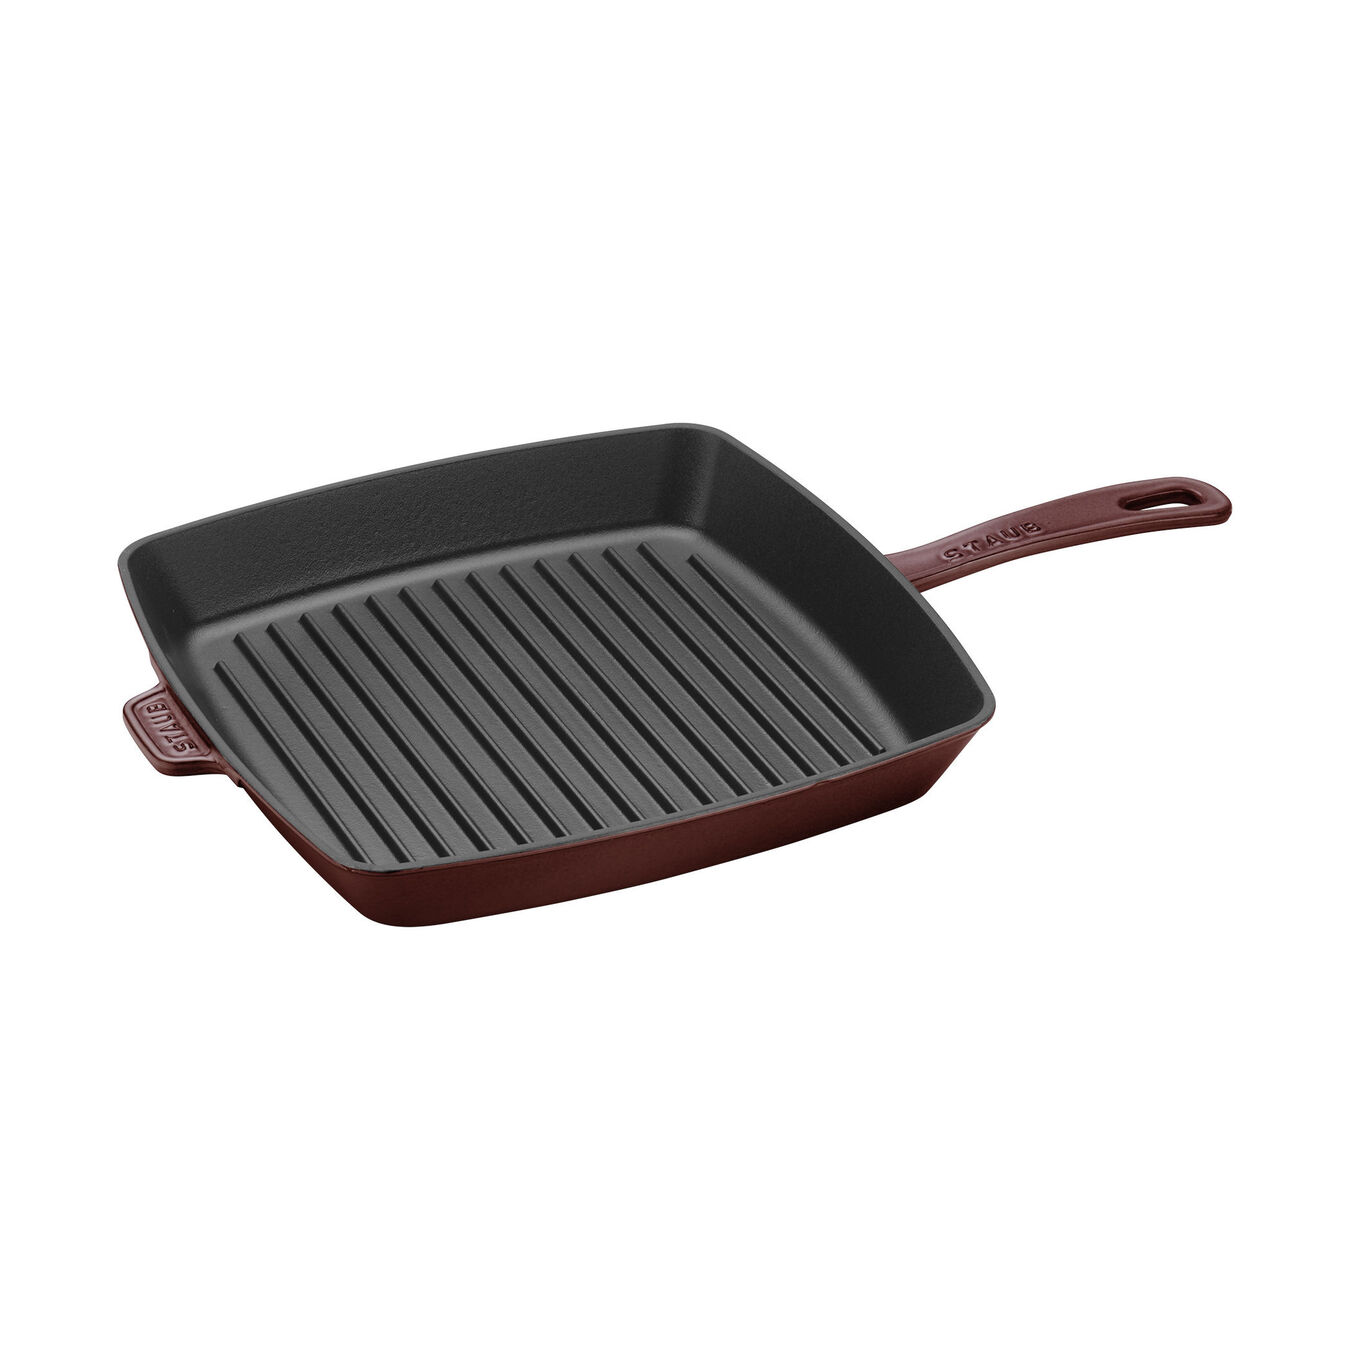 26 cm Cast iron square American grill, Grenadine-Red,,large 1